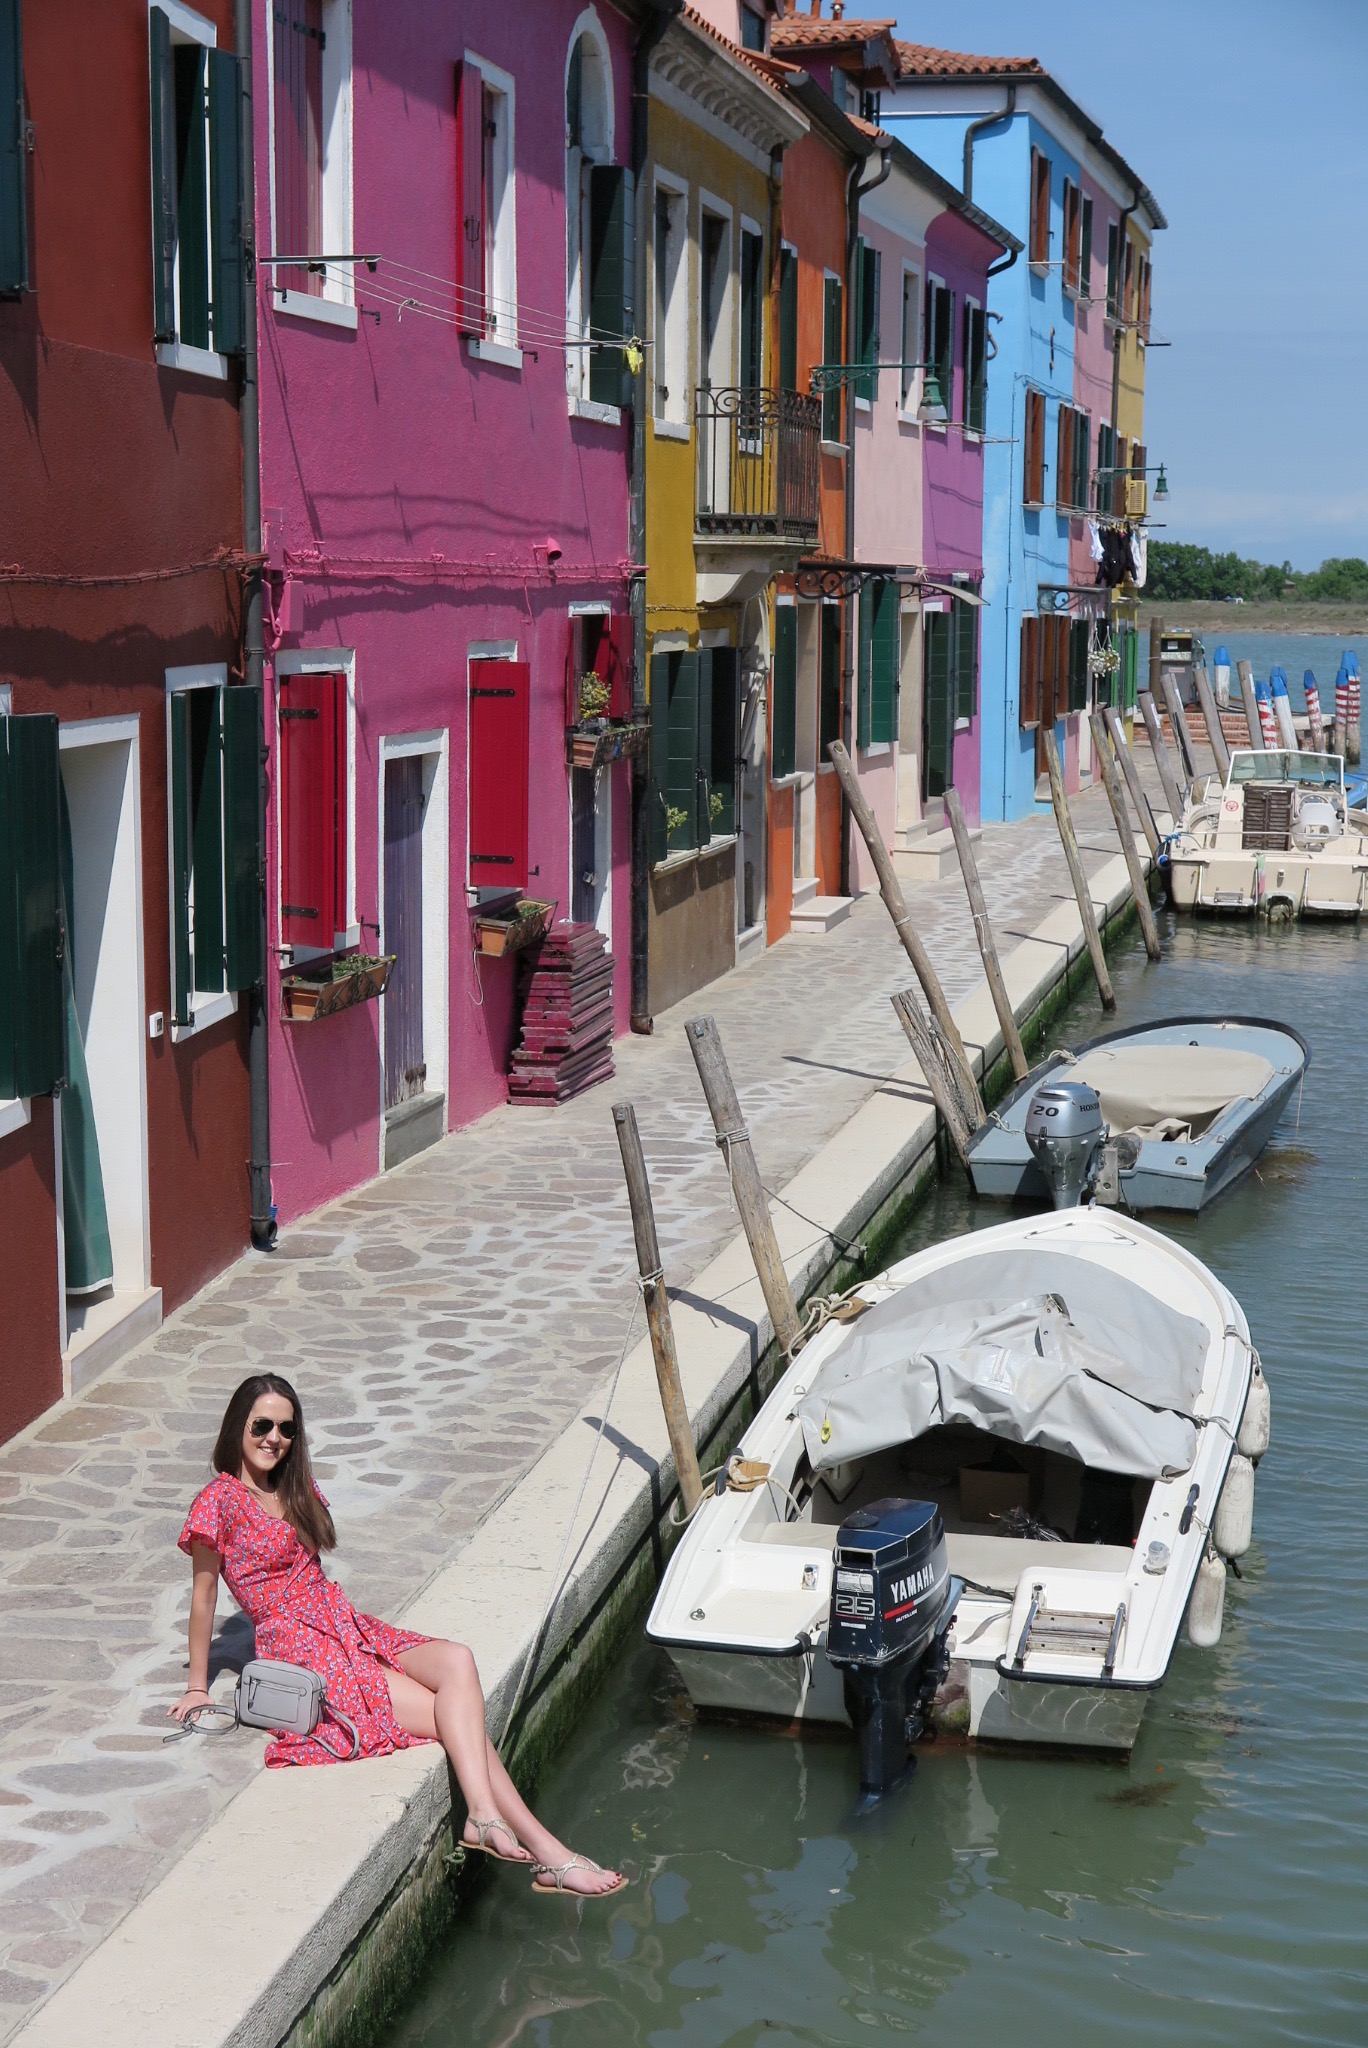 Coloured streets of Burano